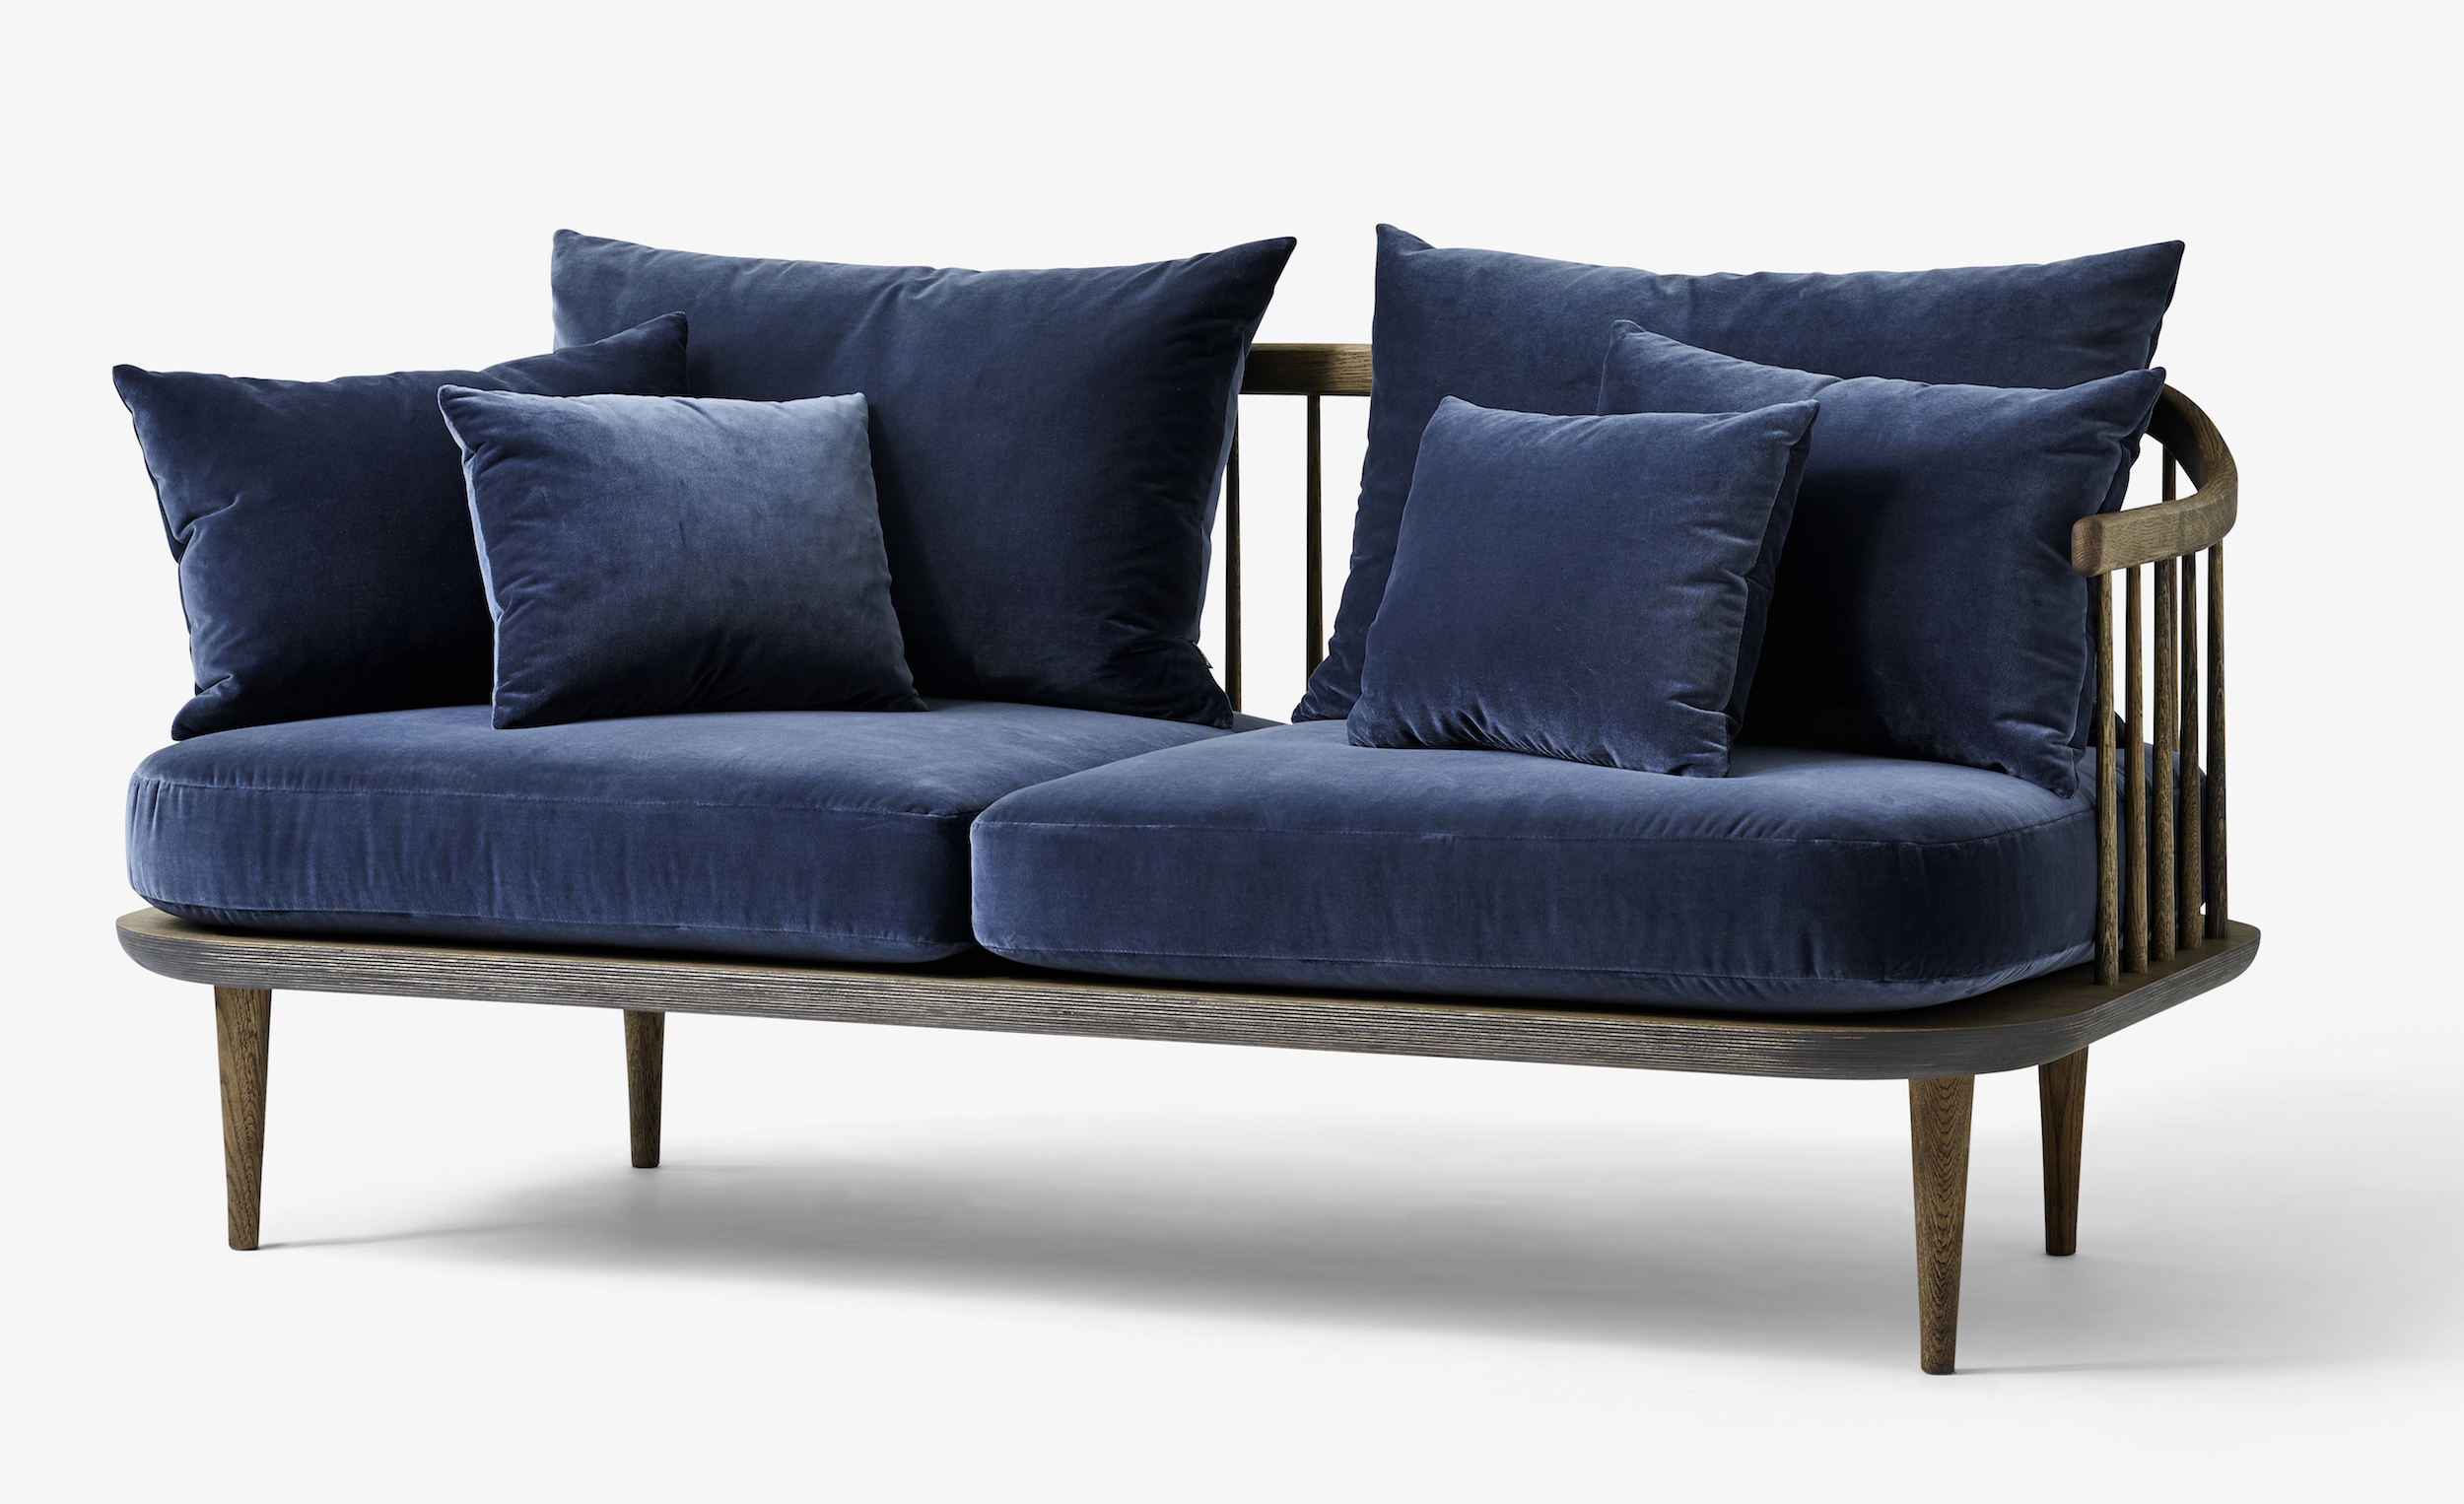 Schlafsofa design lounge  AndTradition - FLY LOUNGE series